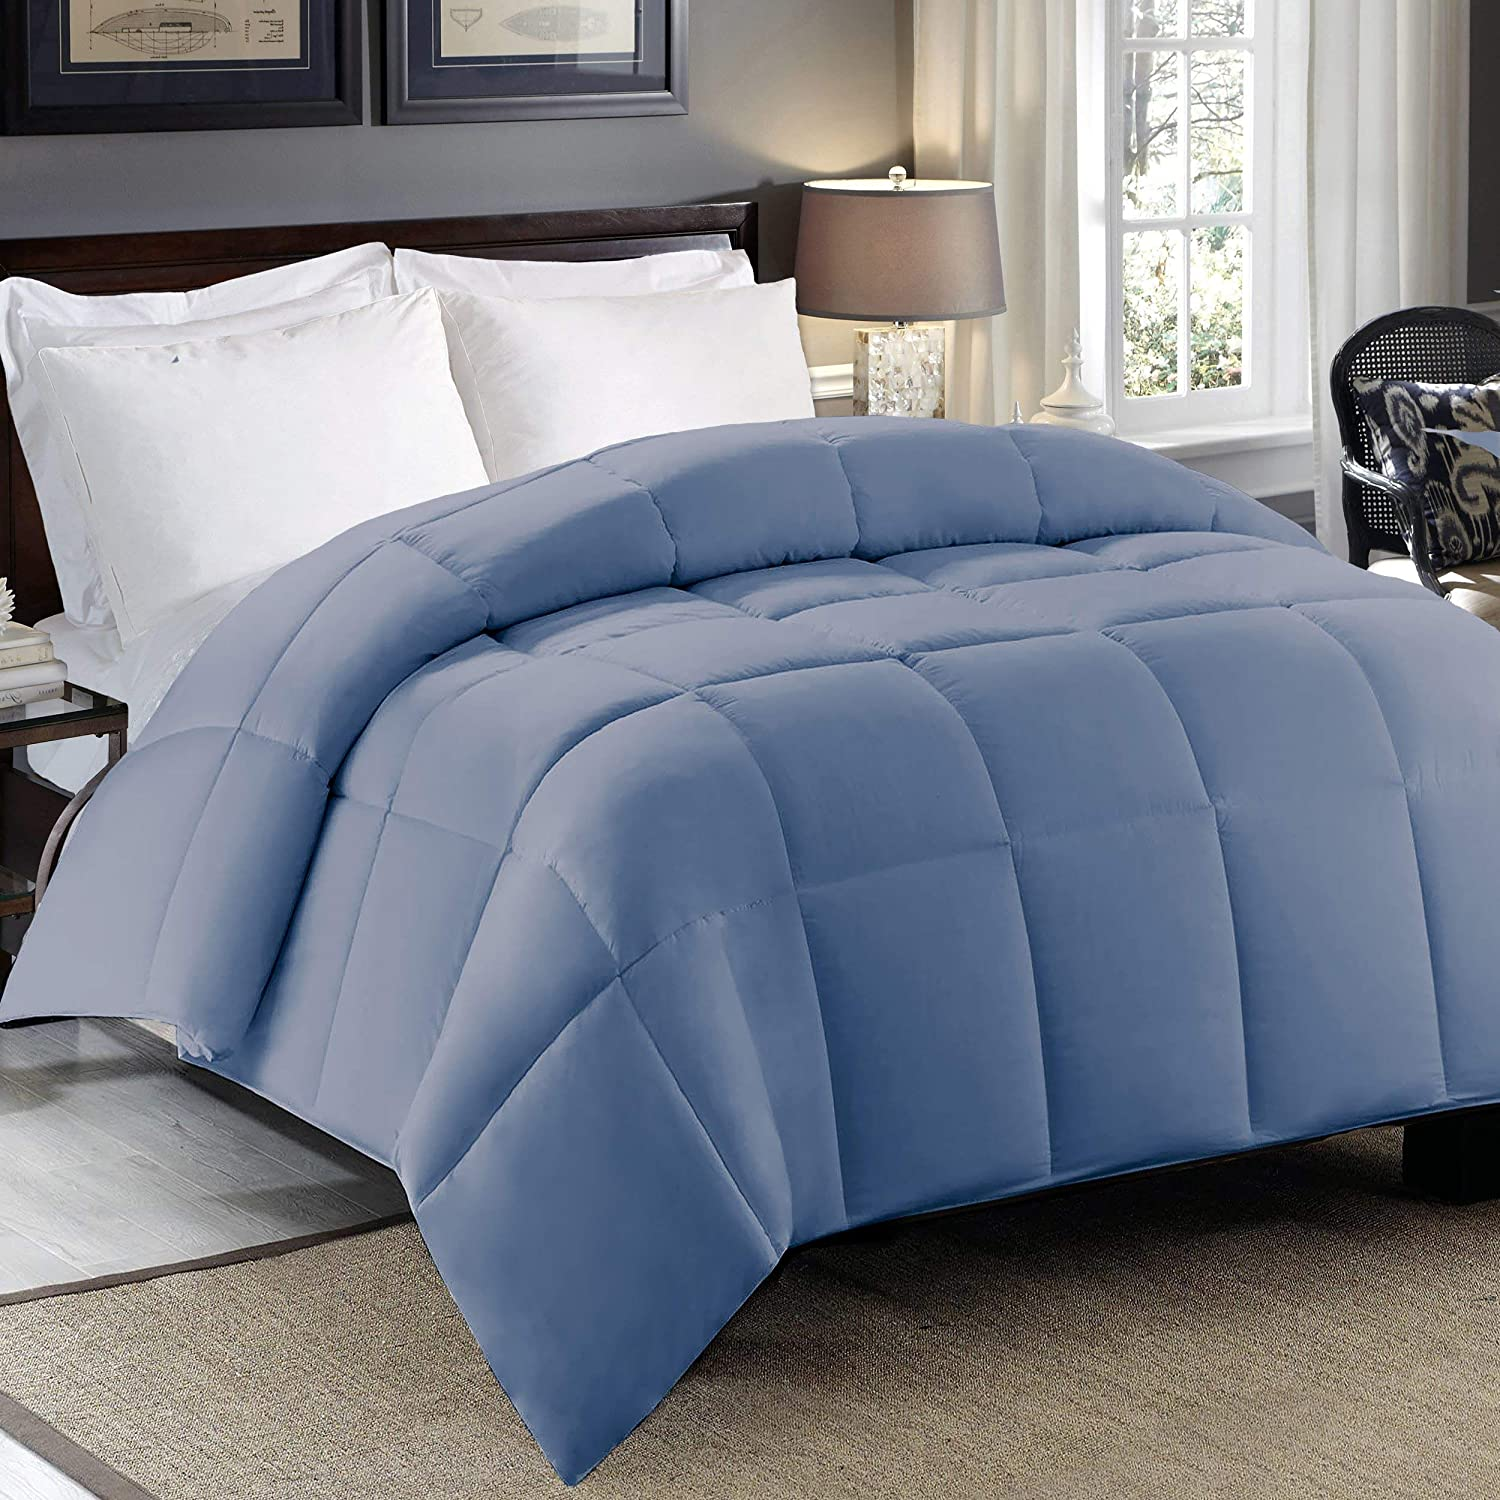 Blue Ridge Home Fashions 300 Thread Count Cotton Sateen Full-Queen in Riverside Color Down Alternative COMFORTERS